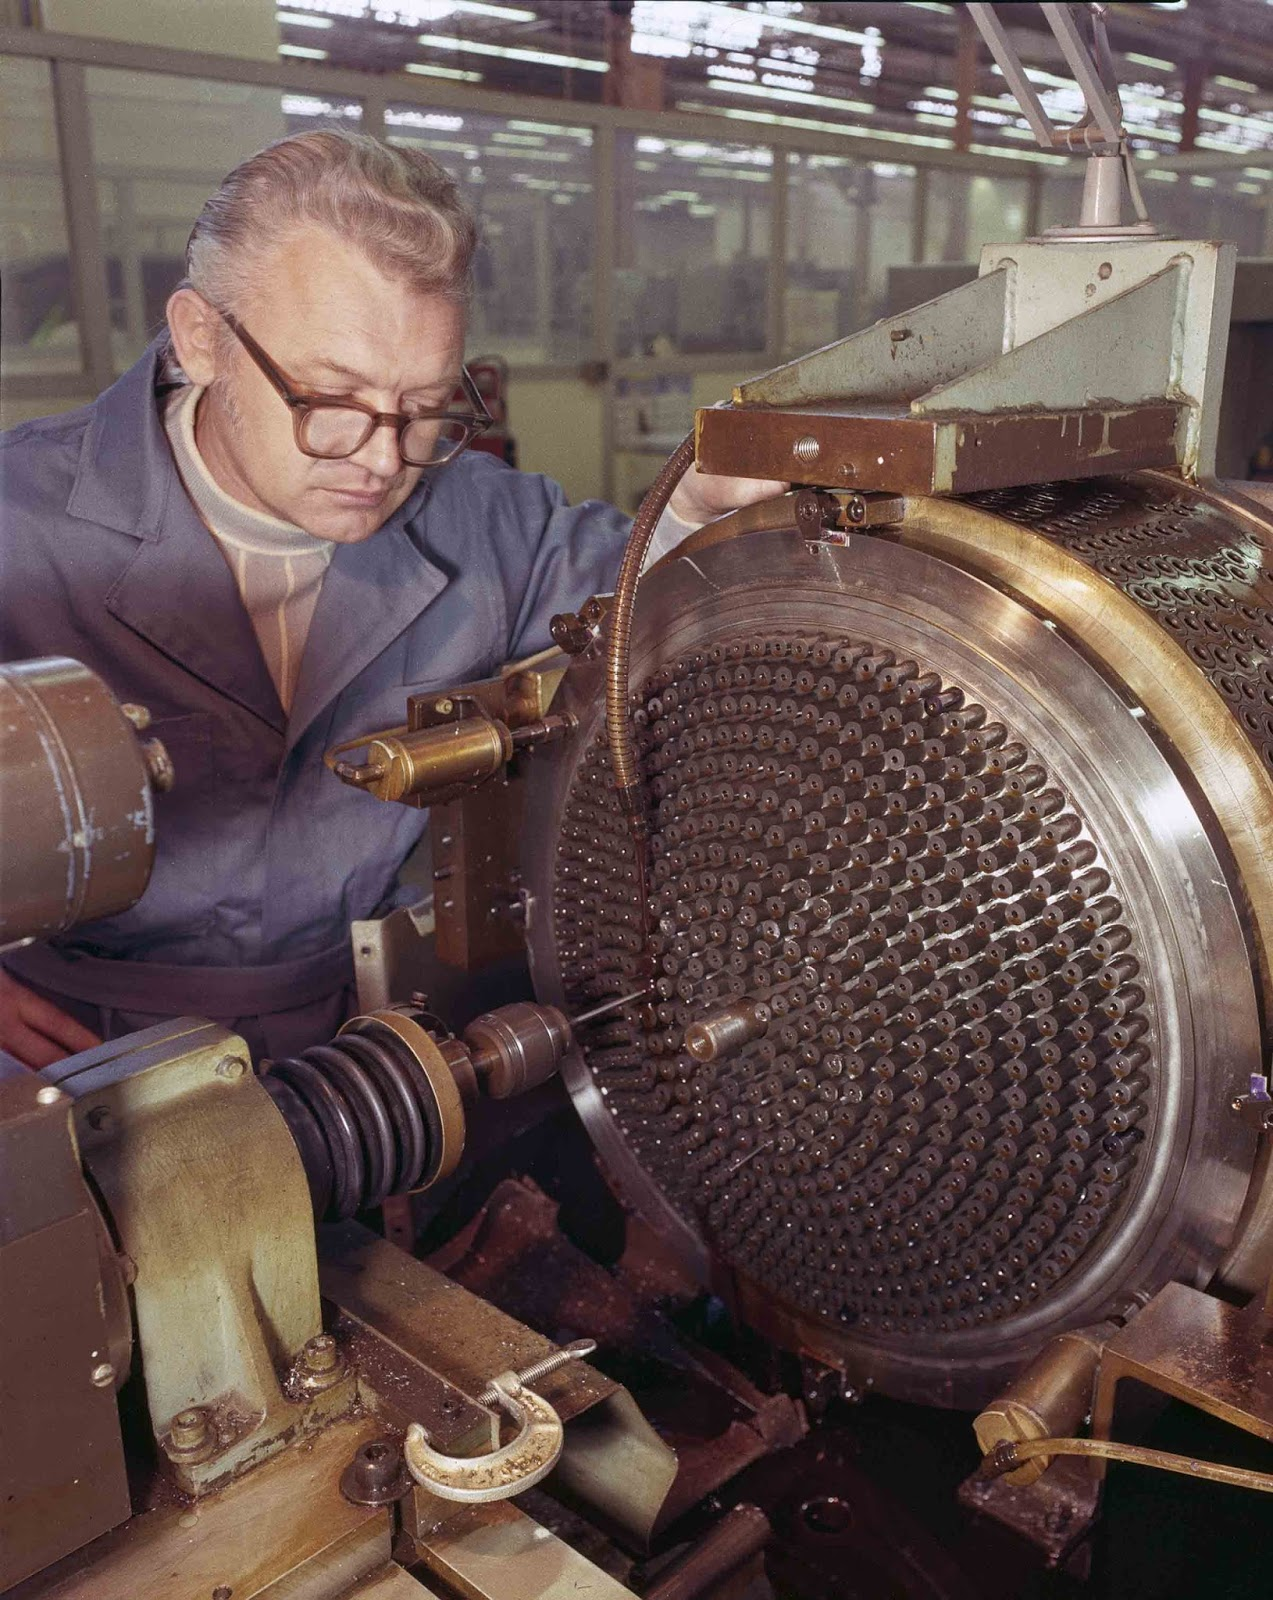 Machining a Space Shuttle Main Engine injector, 1977.